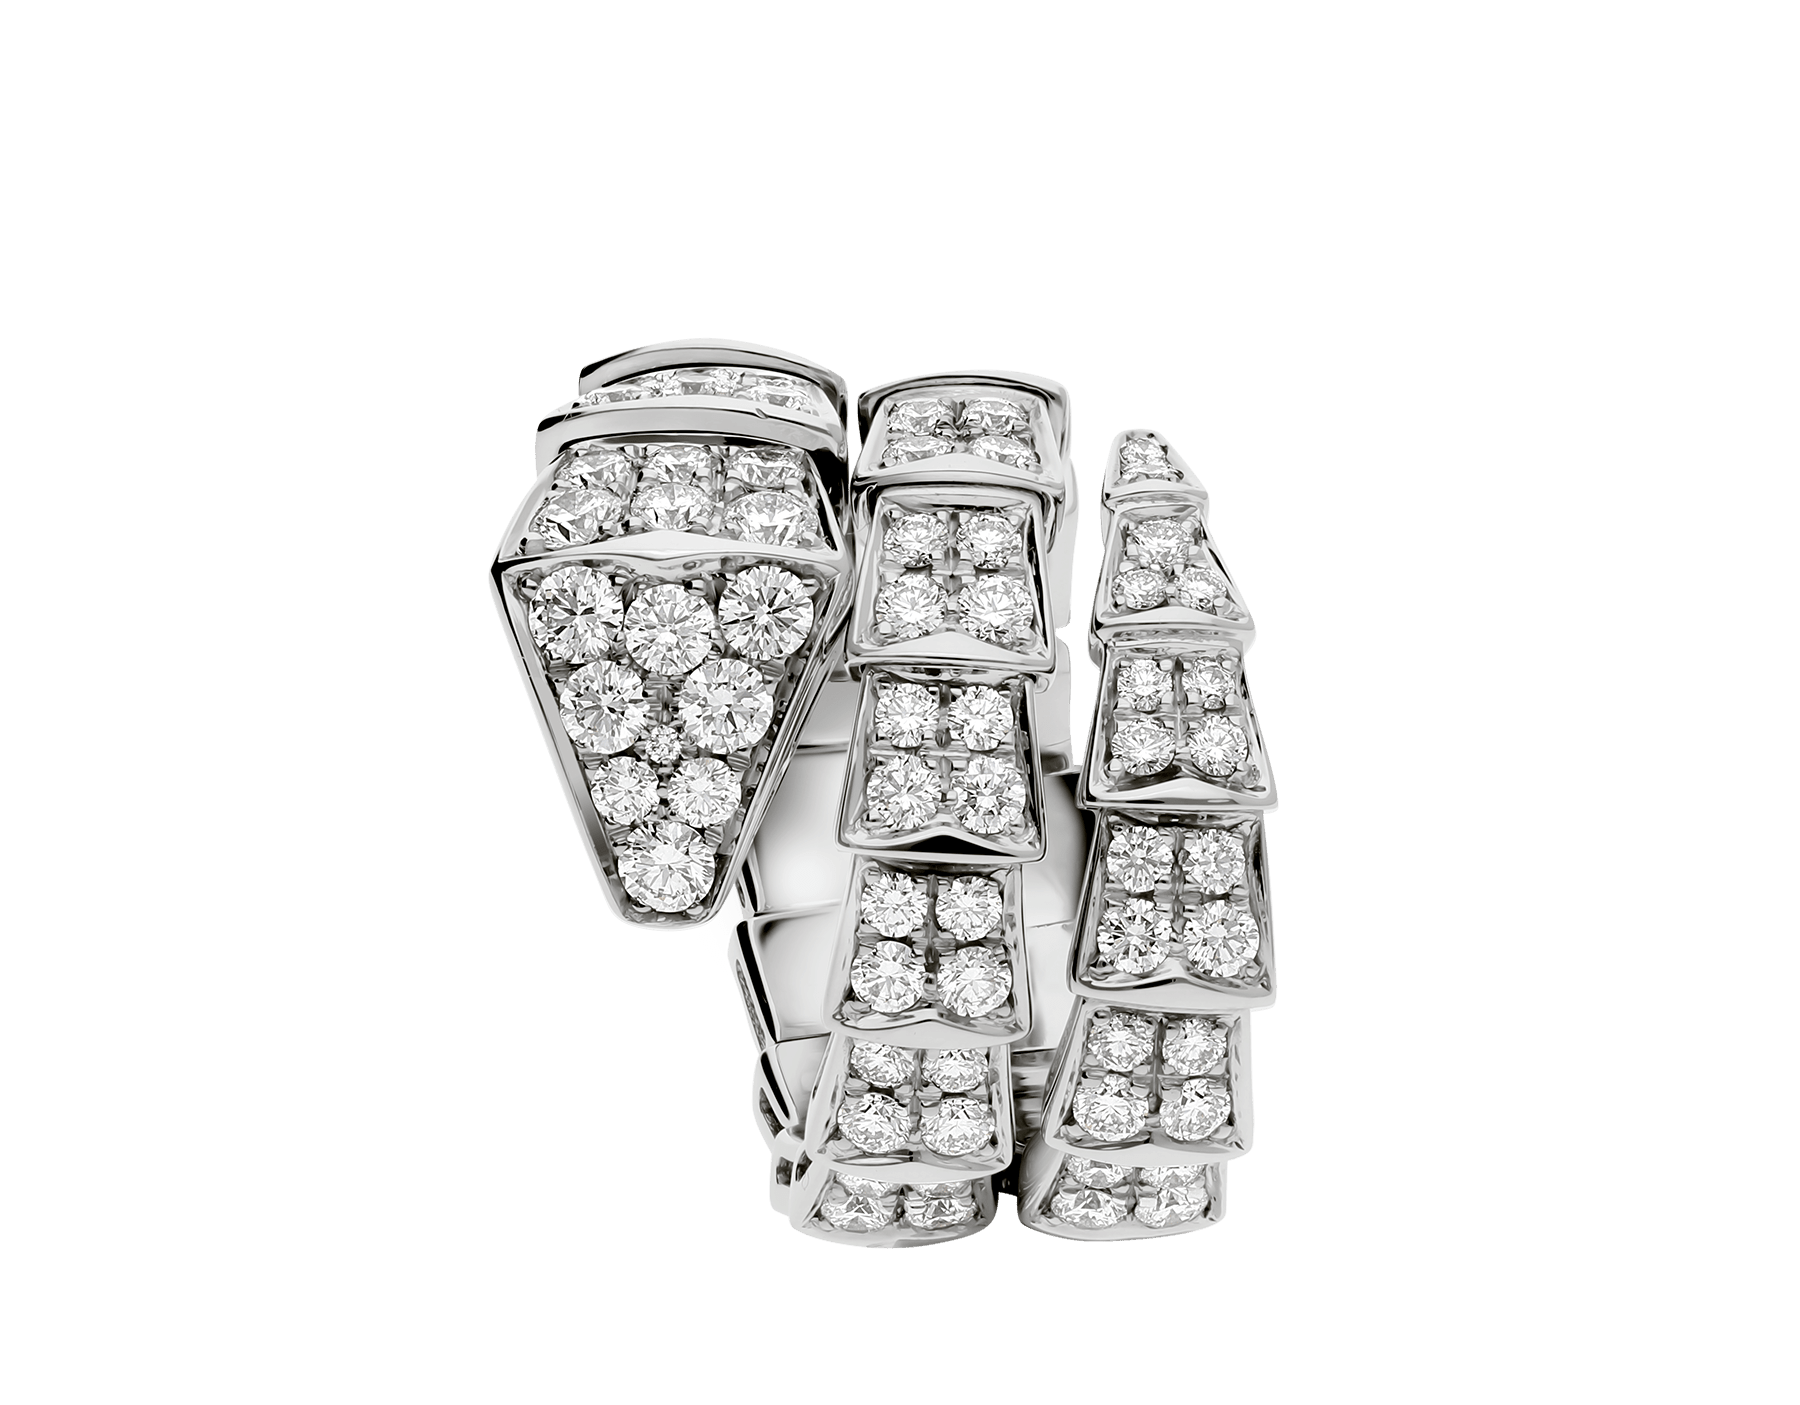 Serpenti Viper two-coil ring in 18 kt white gold, set with full pavé diamonds. AN855117 image 2